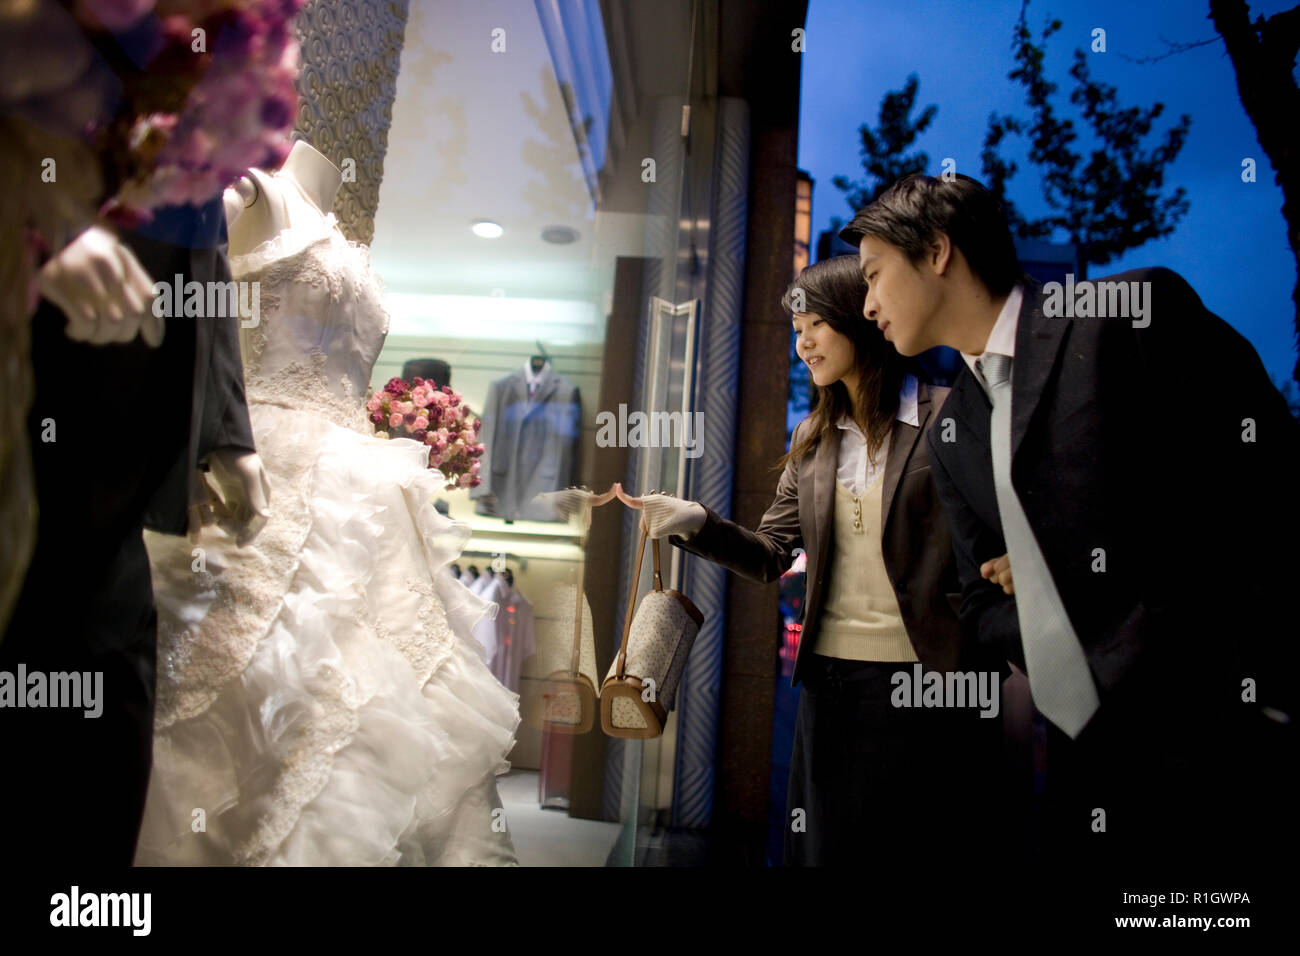 Young adult couple looking at a wedding dress through a shop window at twilight. - Stock Image